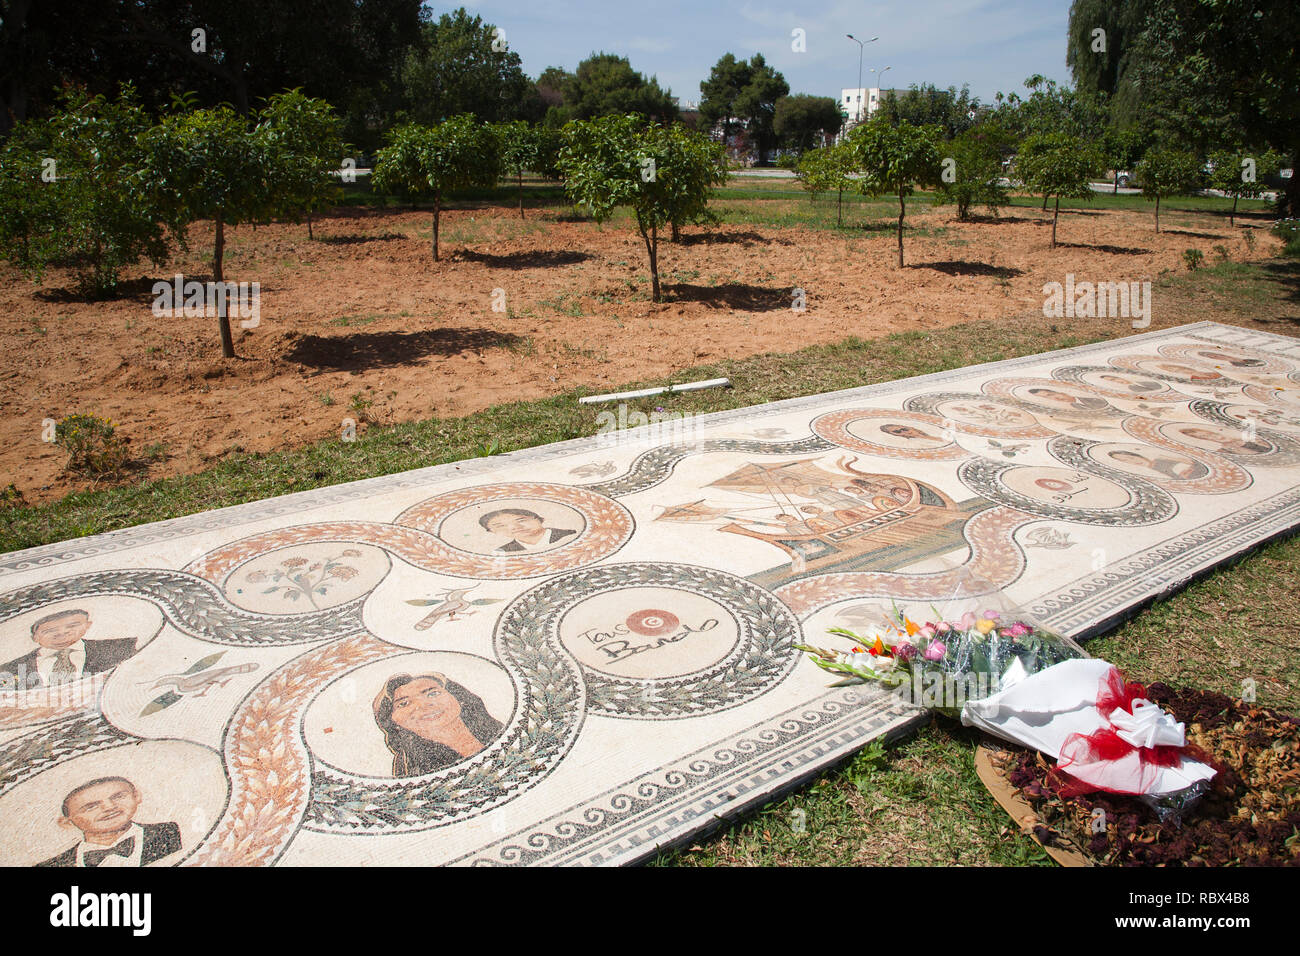 Memorial to the victims of the 2015 terrorist attack, Bardo National Museum, Tunis, Tunisia, Africa - Stock Image